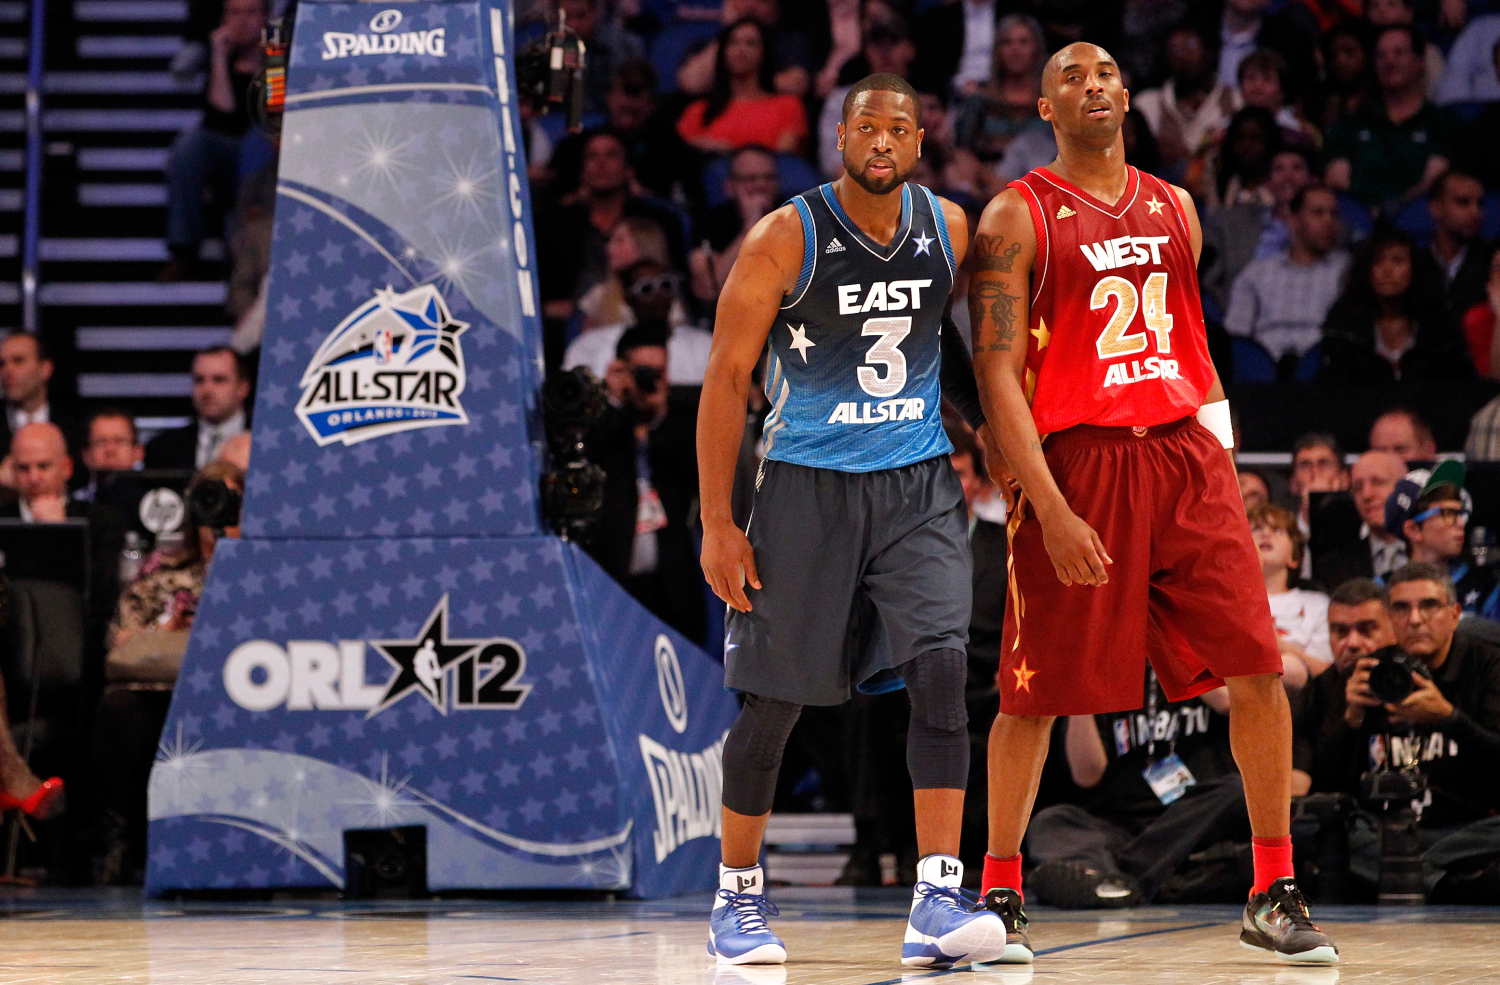 Kobe Bryant and Dwyane Wade had some intense battles against each other on the basketball court. One time, Wade even broke Bryant's nose.